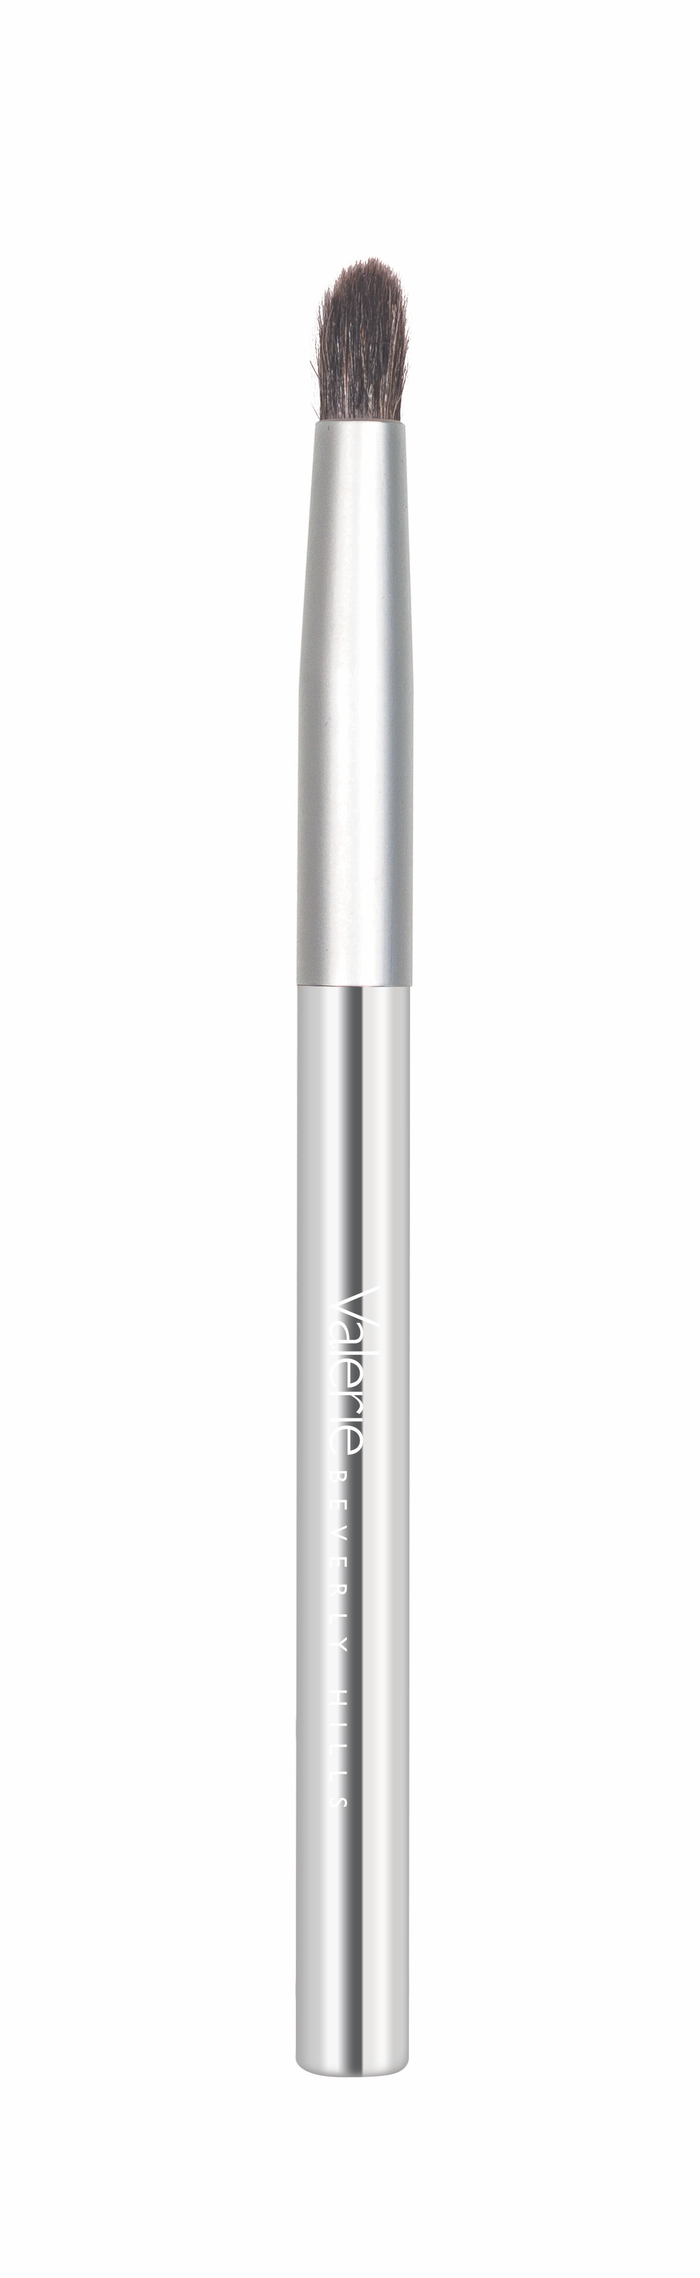 # 11 Blue Squirrel Detailer Eyeshadow Brush - Valerie Beverly Hills